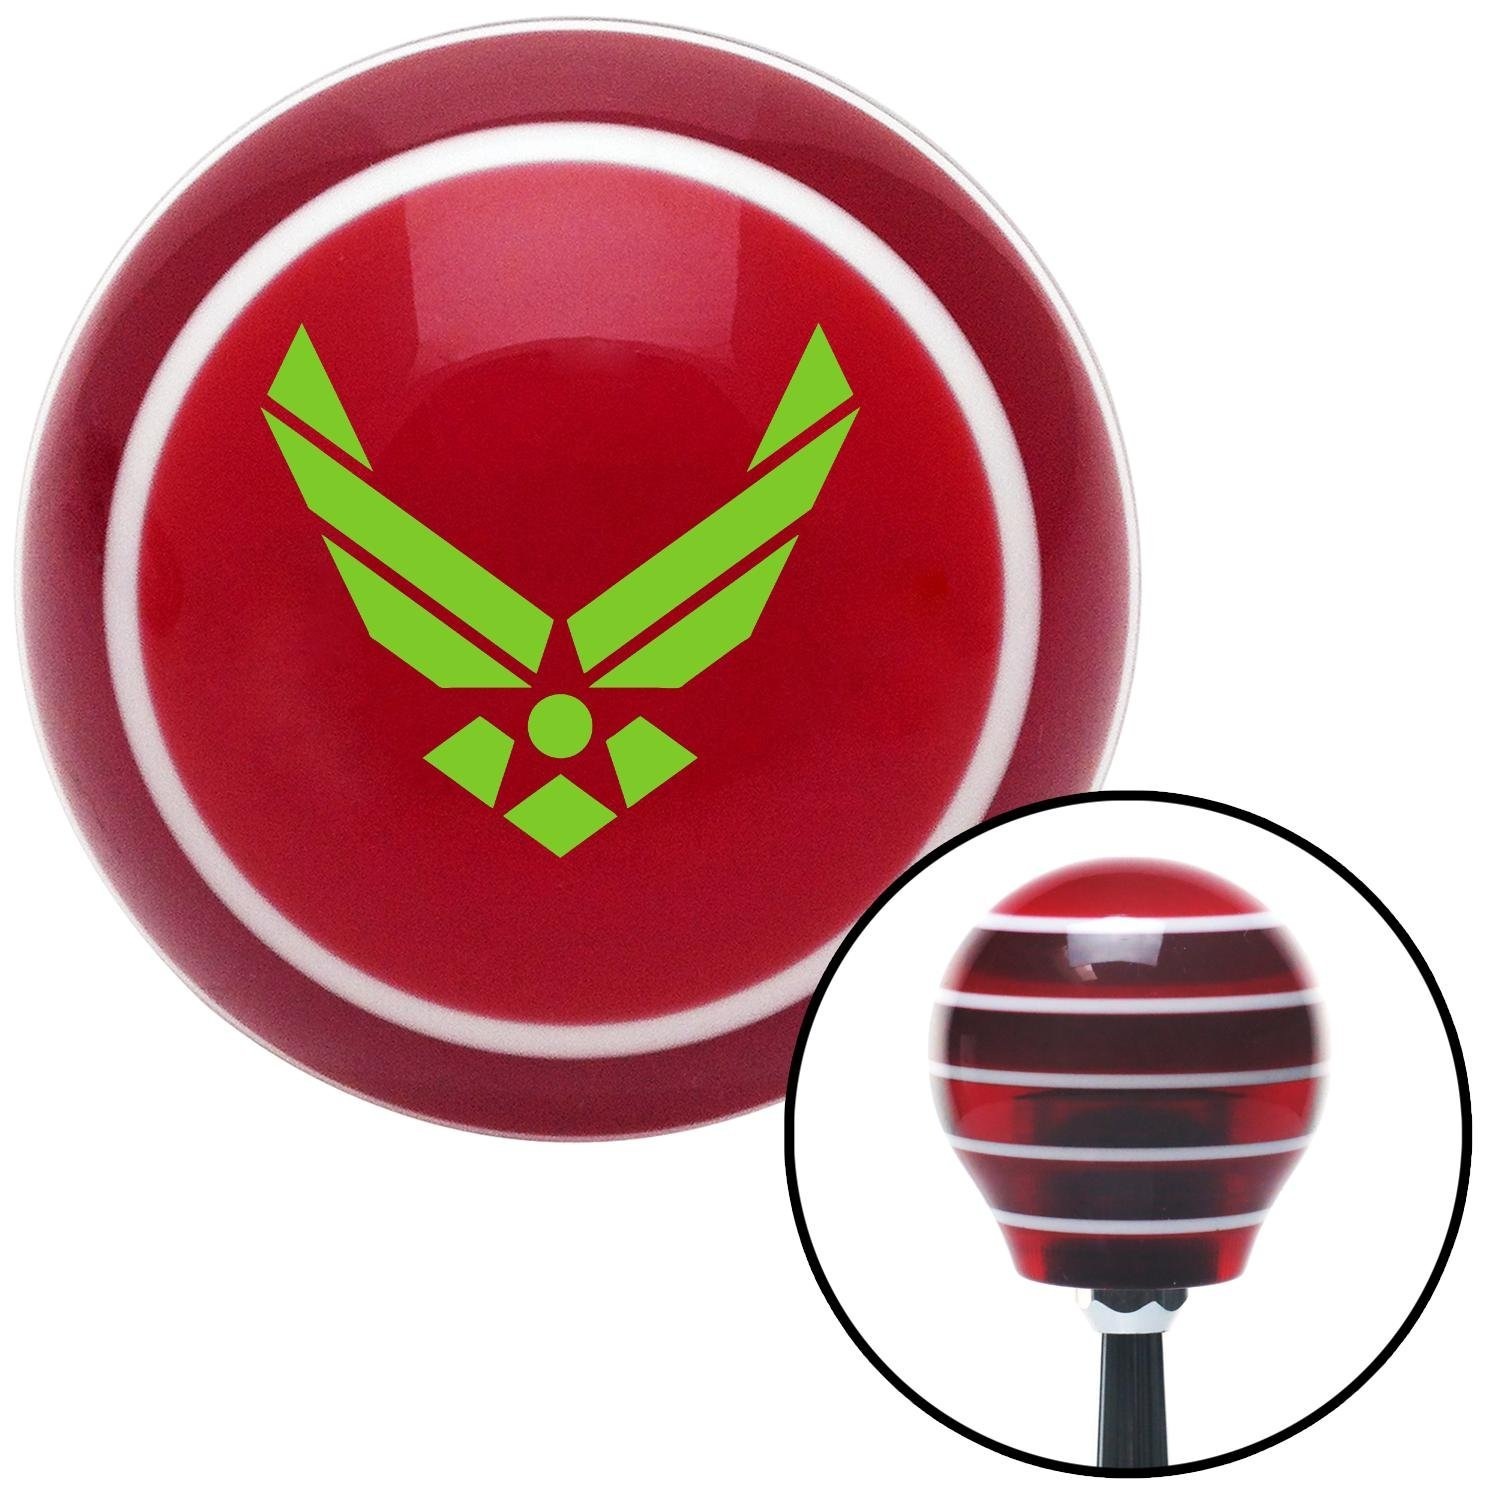 American Shifter 115285 Red Stripe Shift Knob with M16 x 1.5 Insert Green The Air Force Symbol